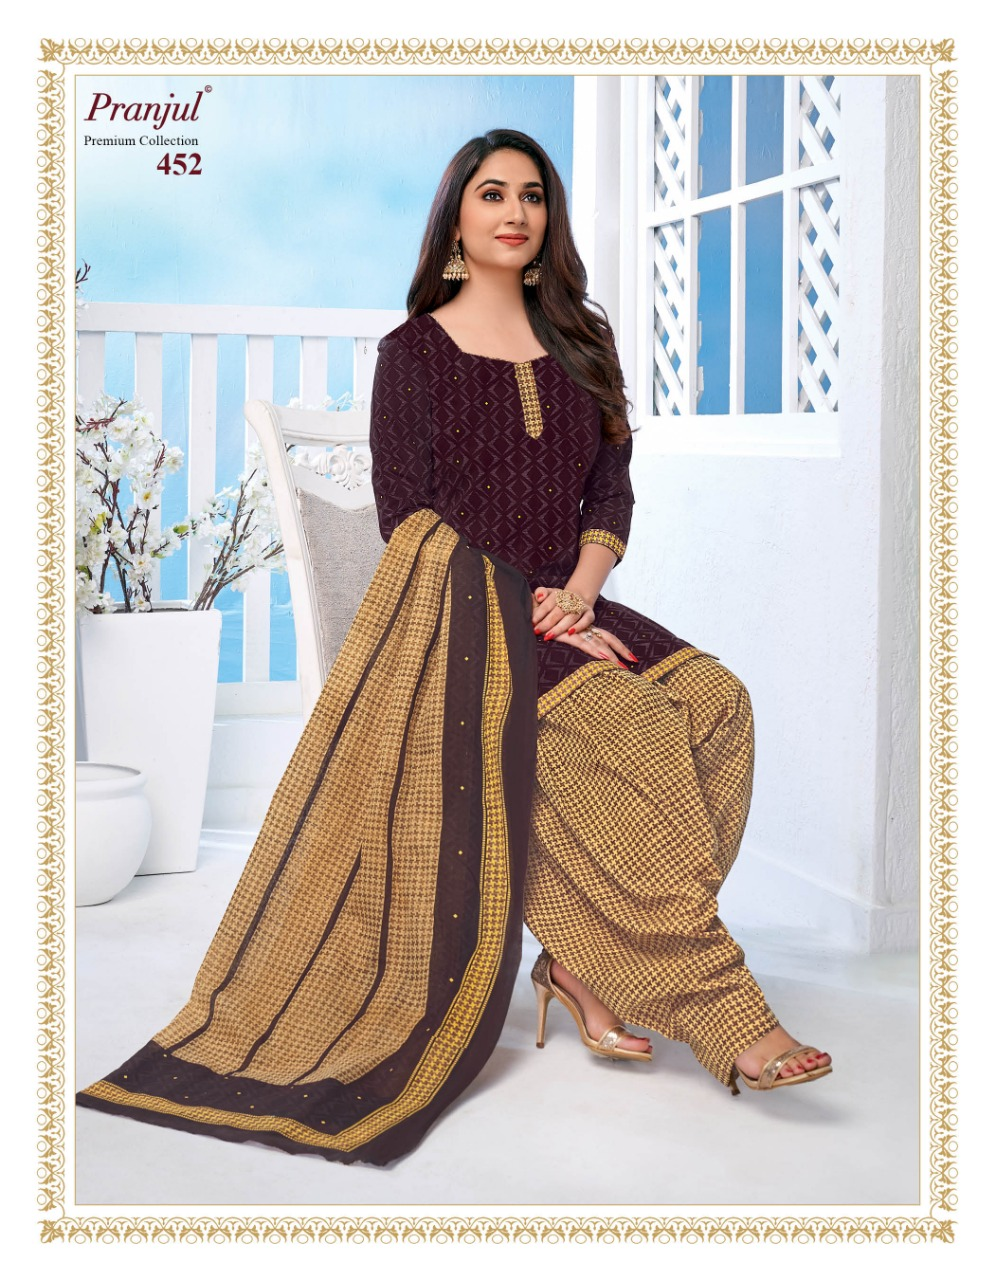 Pranjul Priyanka Vol 4 B Readymade Suit Wholesale Catalog 15 Pcs 18 - Pranjul Priyanka Vol 4 B Readymade Suit Wholesale Catalog 15 Pcs